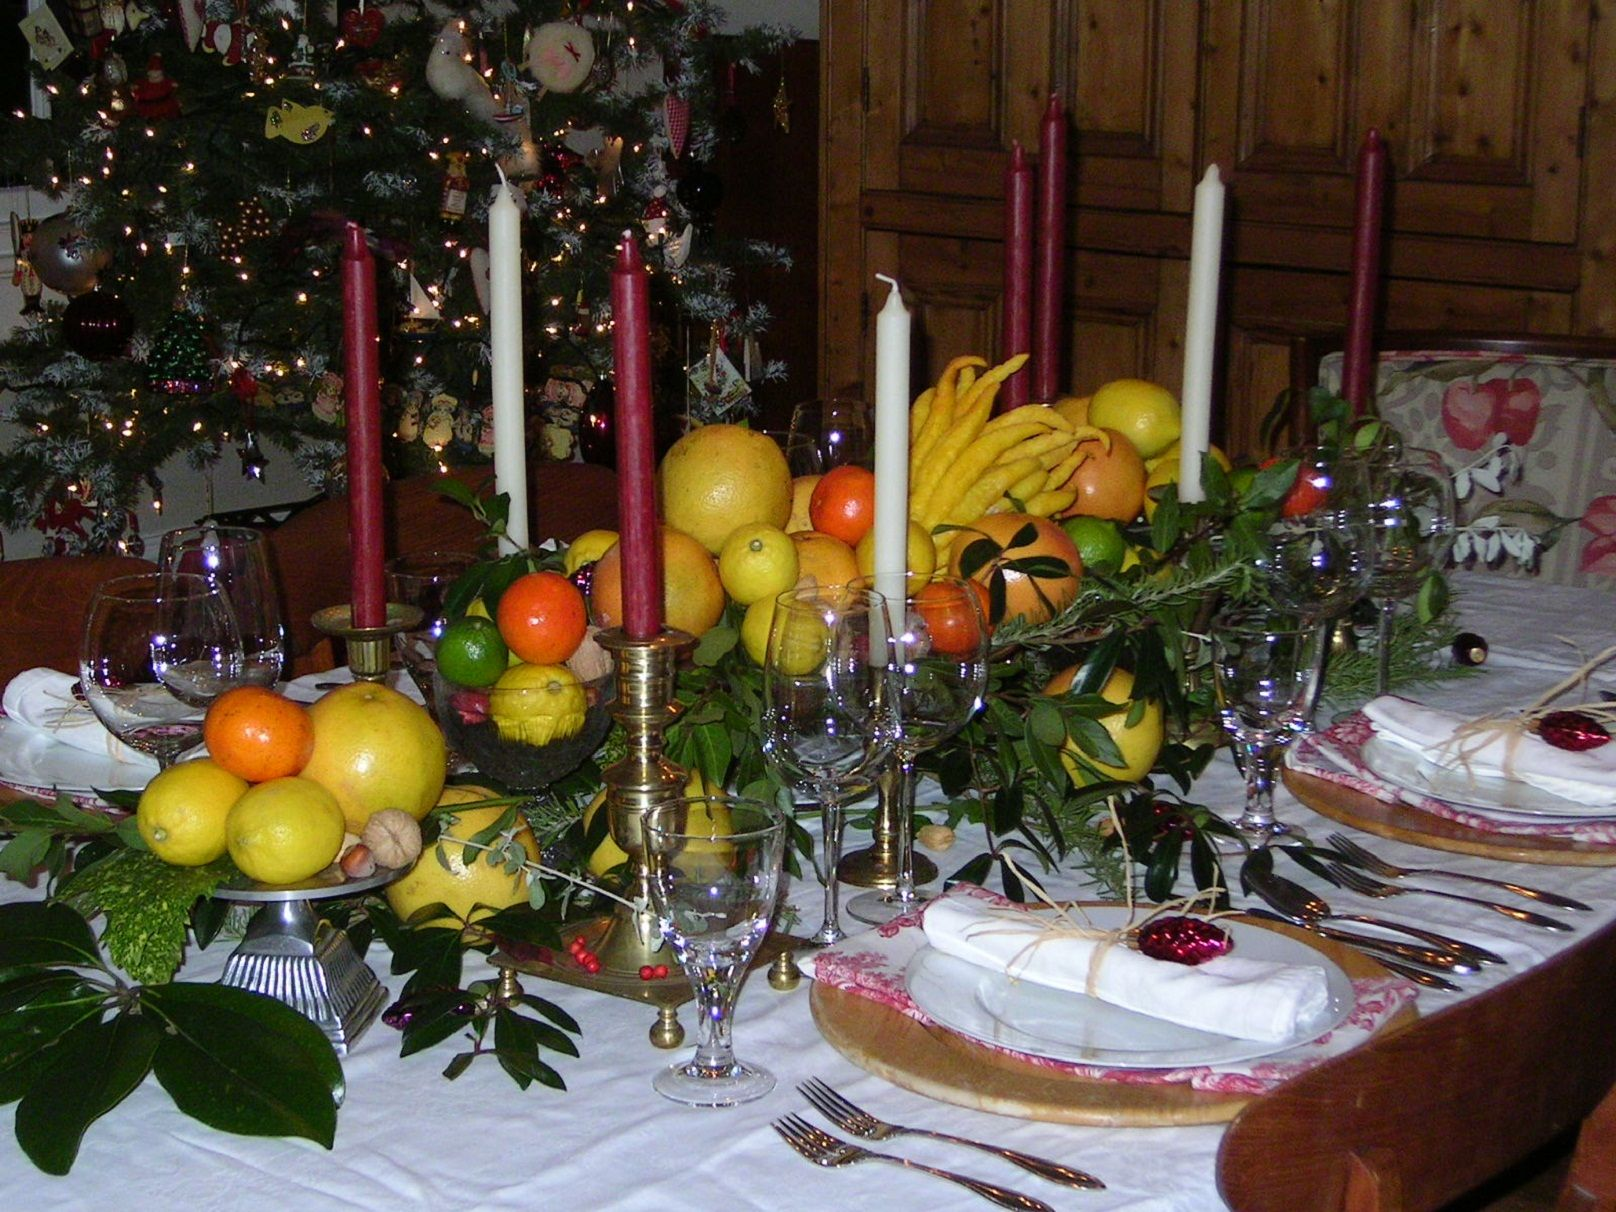 Christmas Table Decorations Christmas Decorations Dinner Table Christmas Dining Table Christmas Table Centerpieces